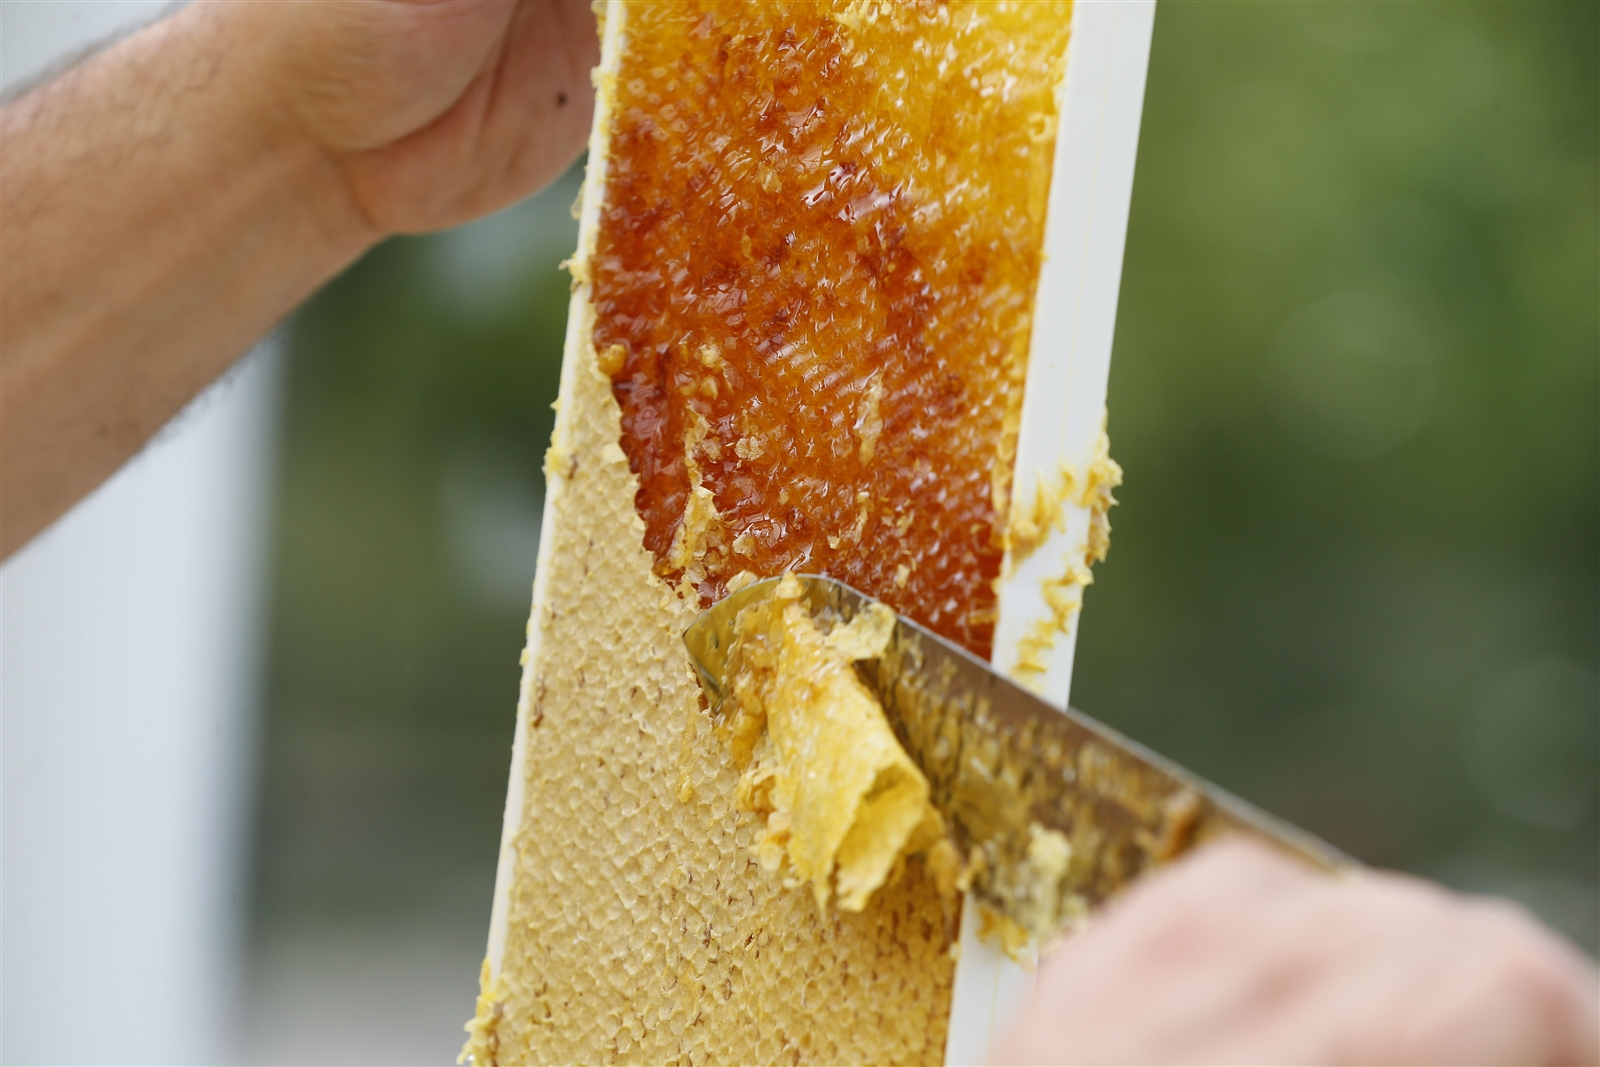 Beekeeper Jesse Perkins uses a honey uncapping knife to extract from a honey frame.